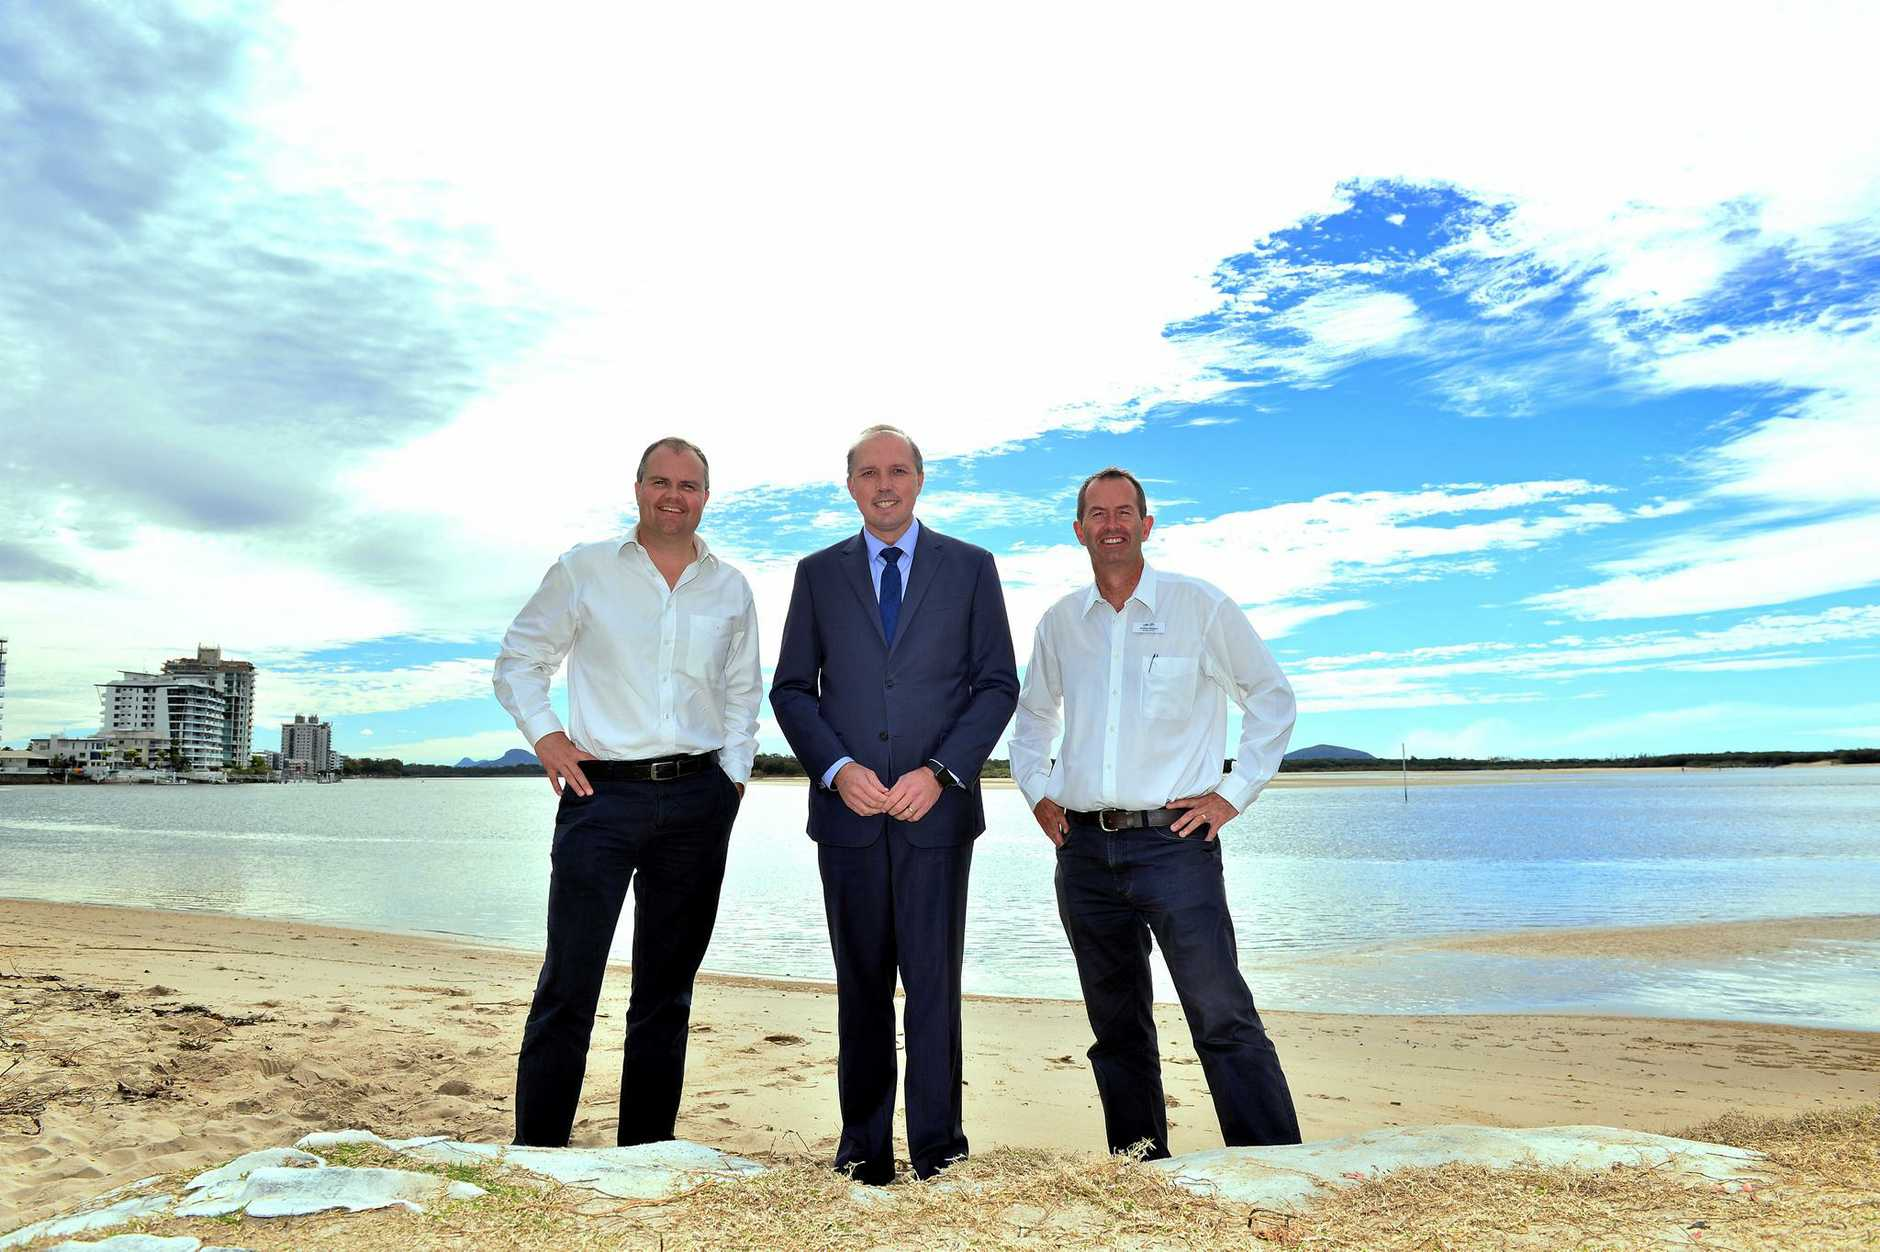 ANNOUNCE: Ted O'Brien,Peter Dutton and Andrew Wallace at Cotton Tree Park to announce funding for a global undersea internet cable.